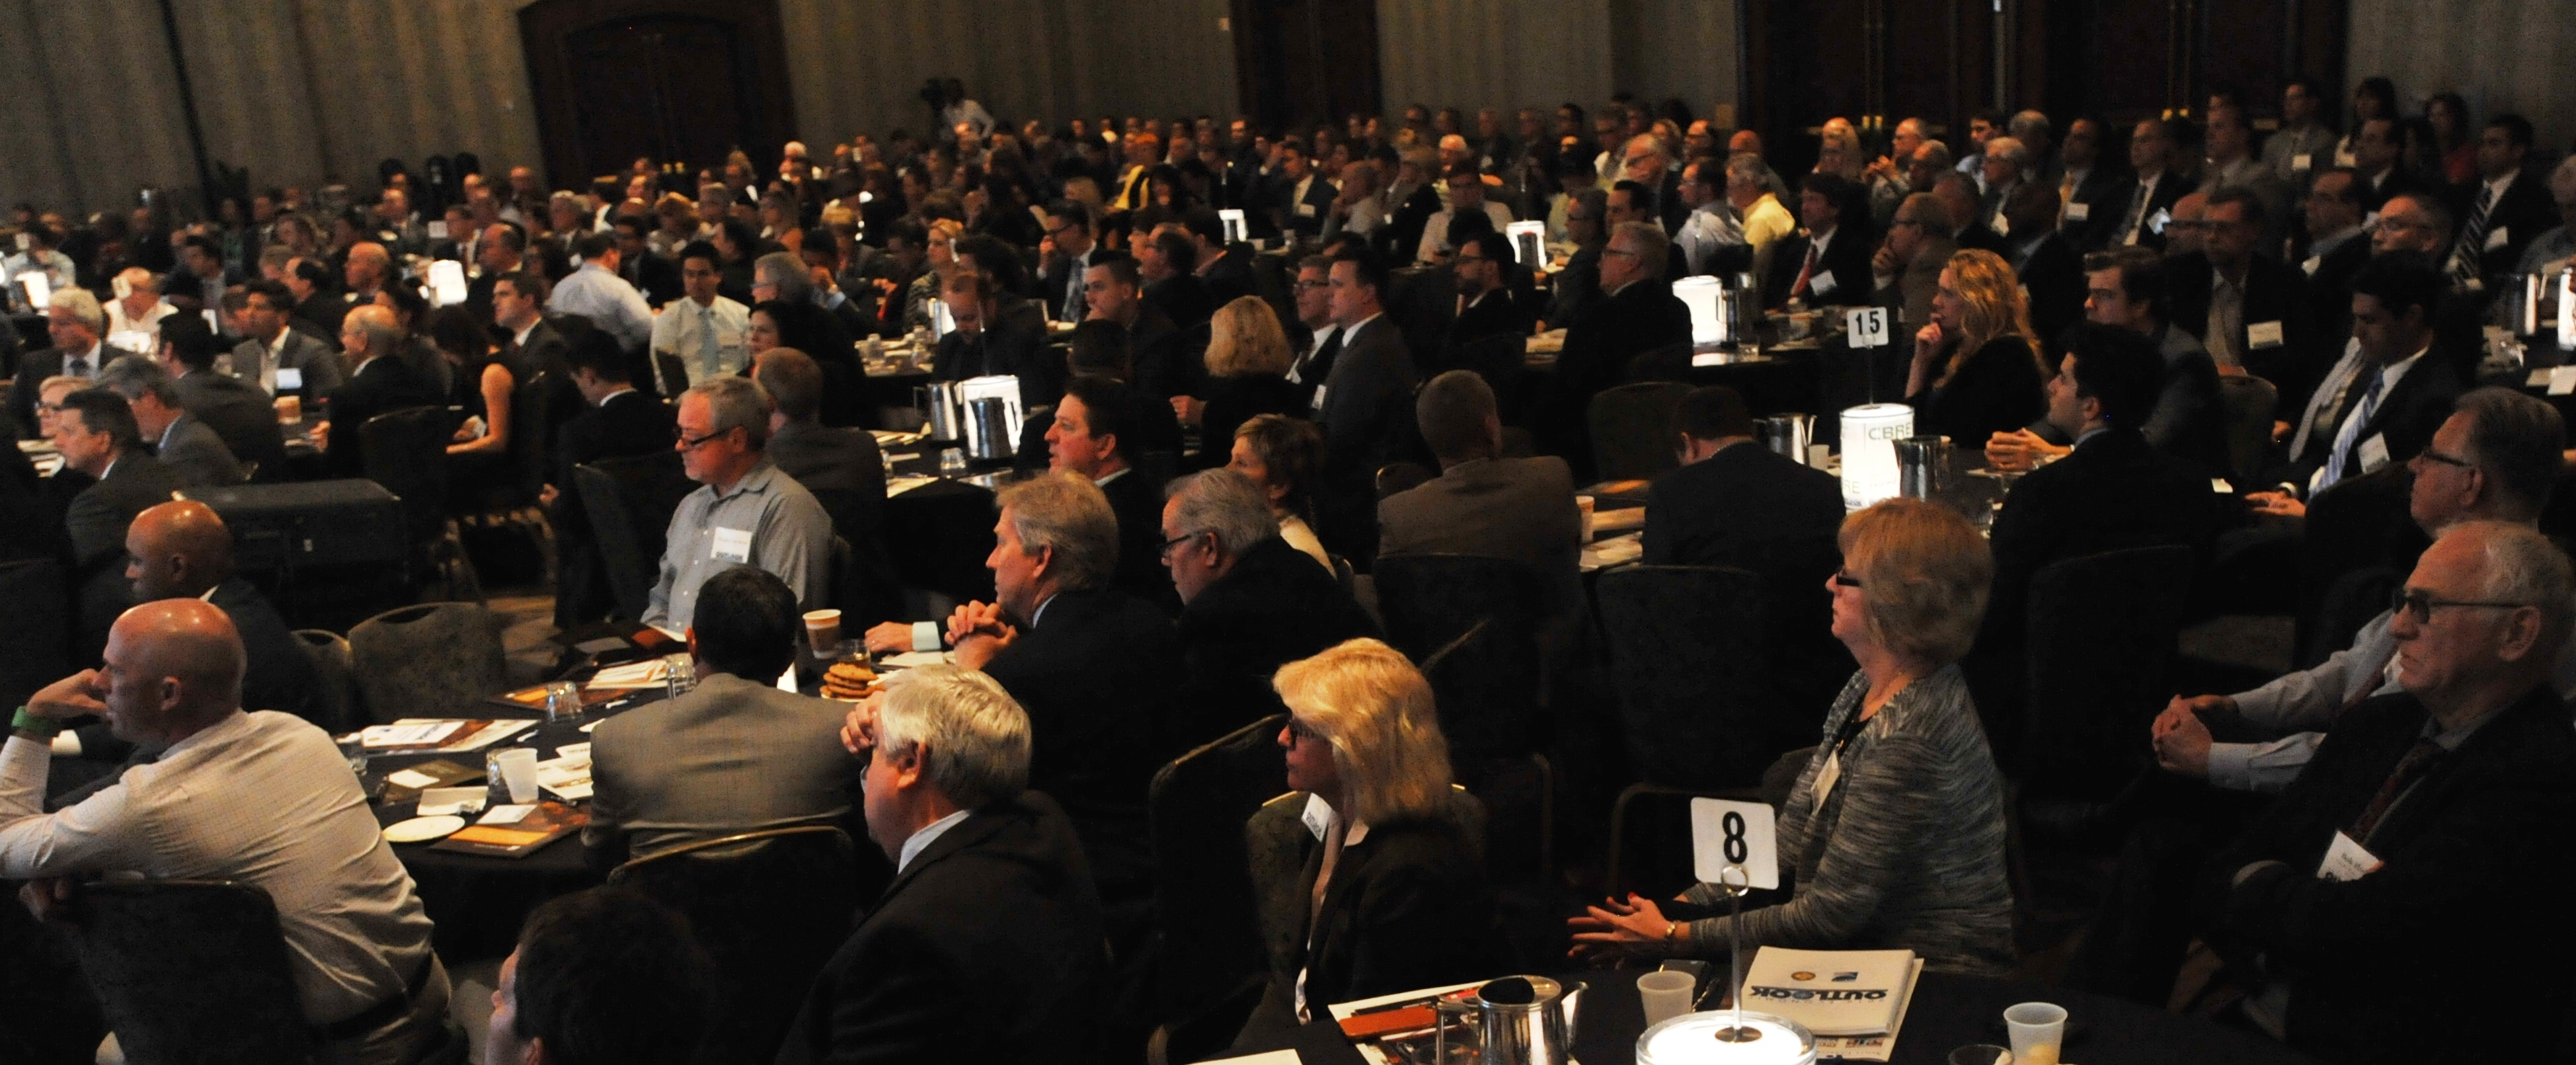 Annual Economic Outlook Conference